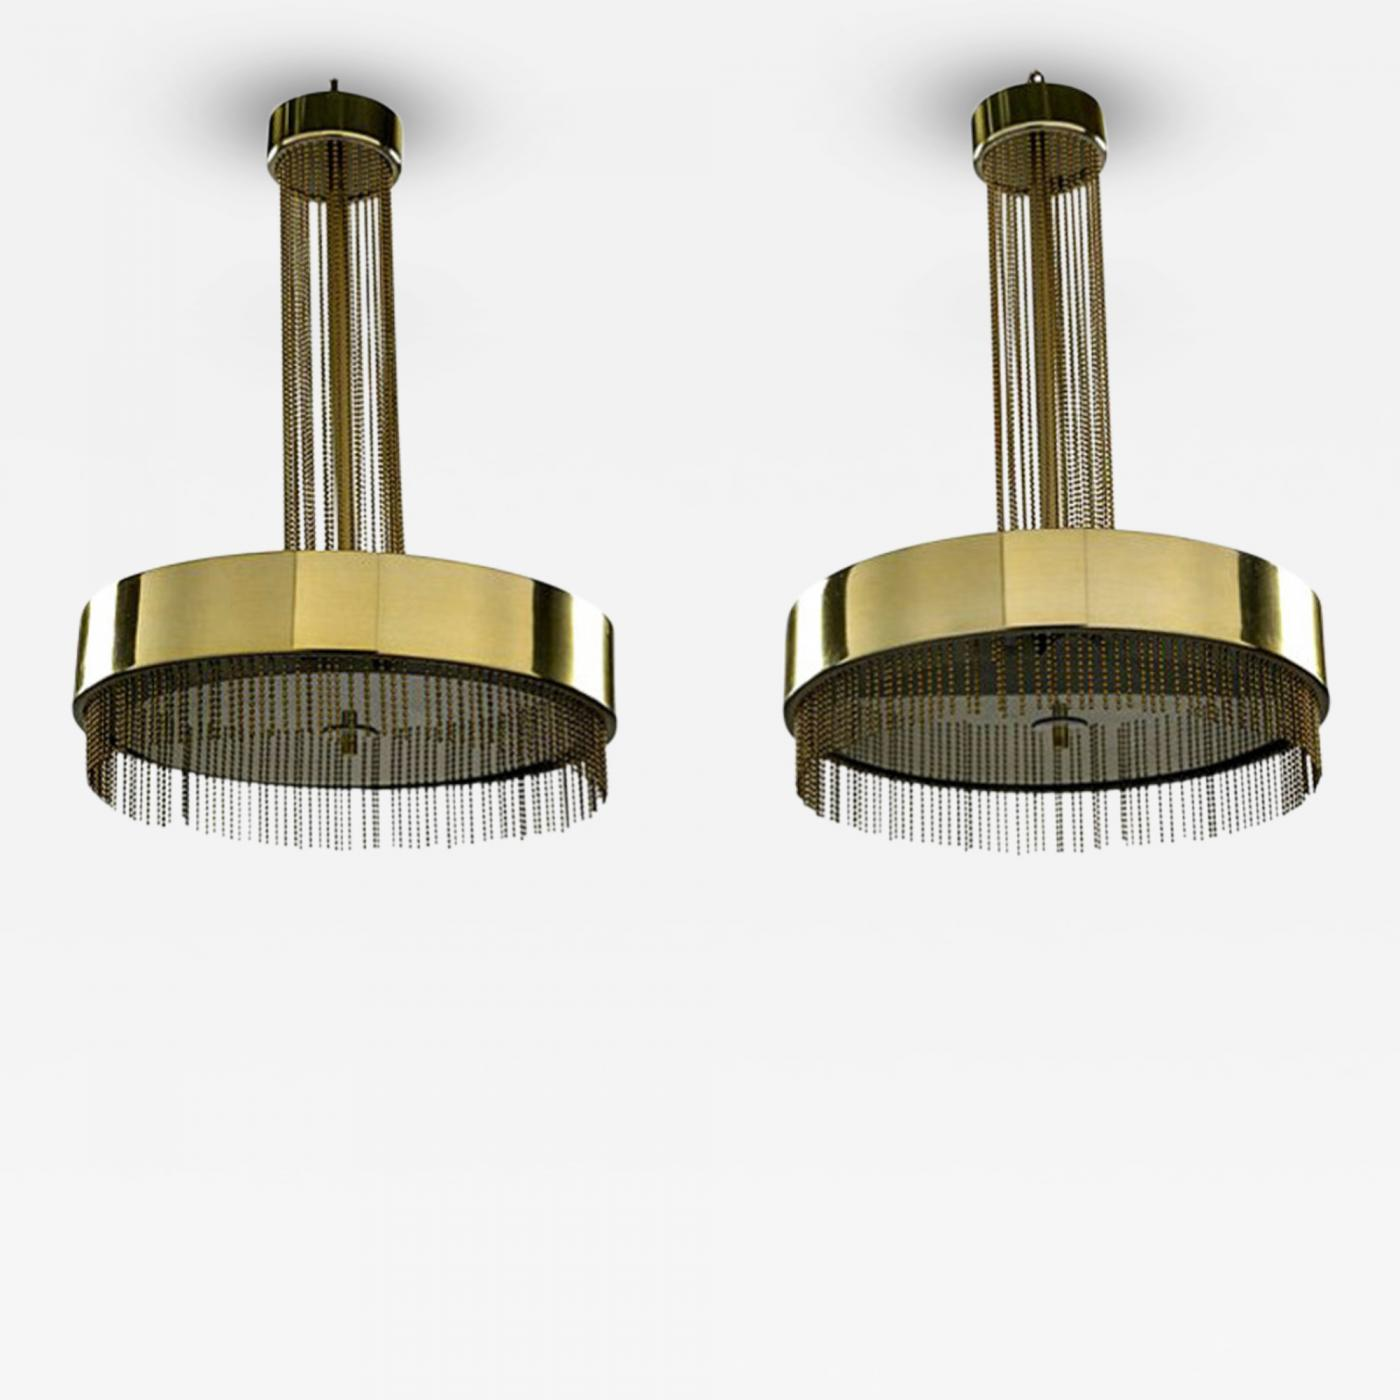 Brass Chandelier Ceiling Lights : Pierre cardin a pair of french brass chandelier ceiling